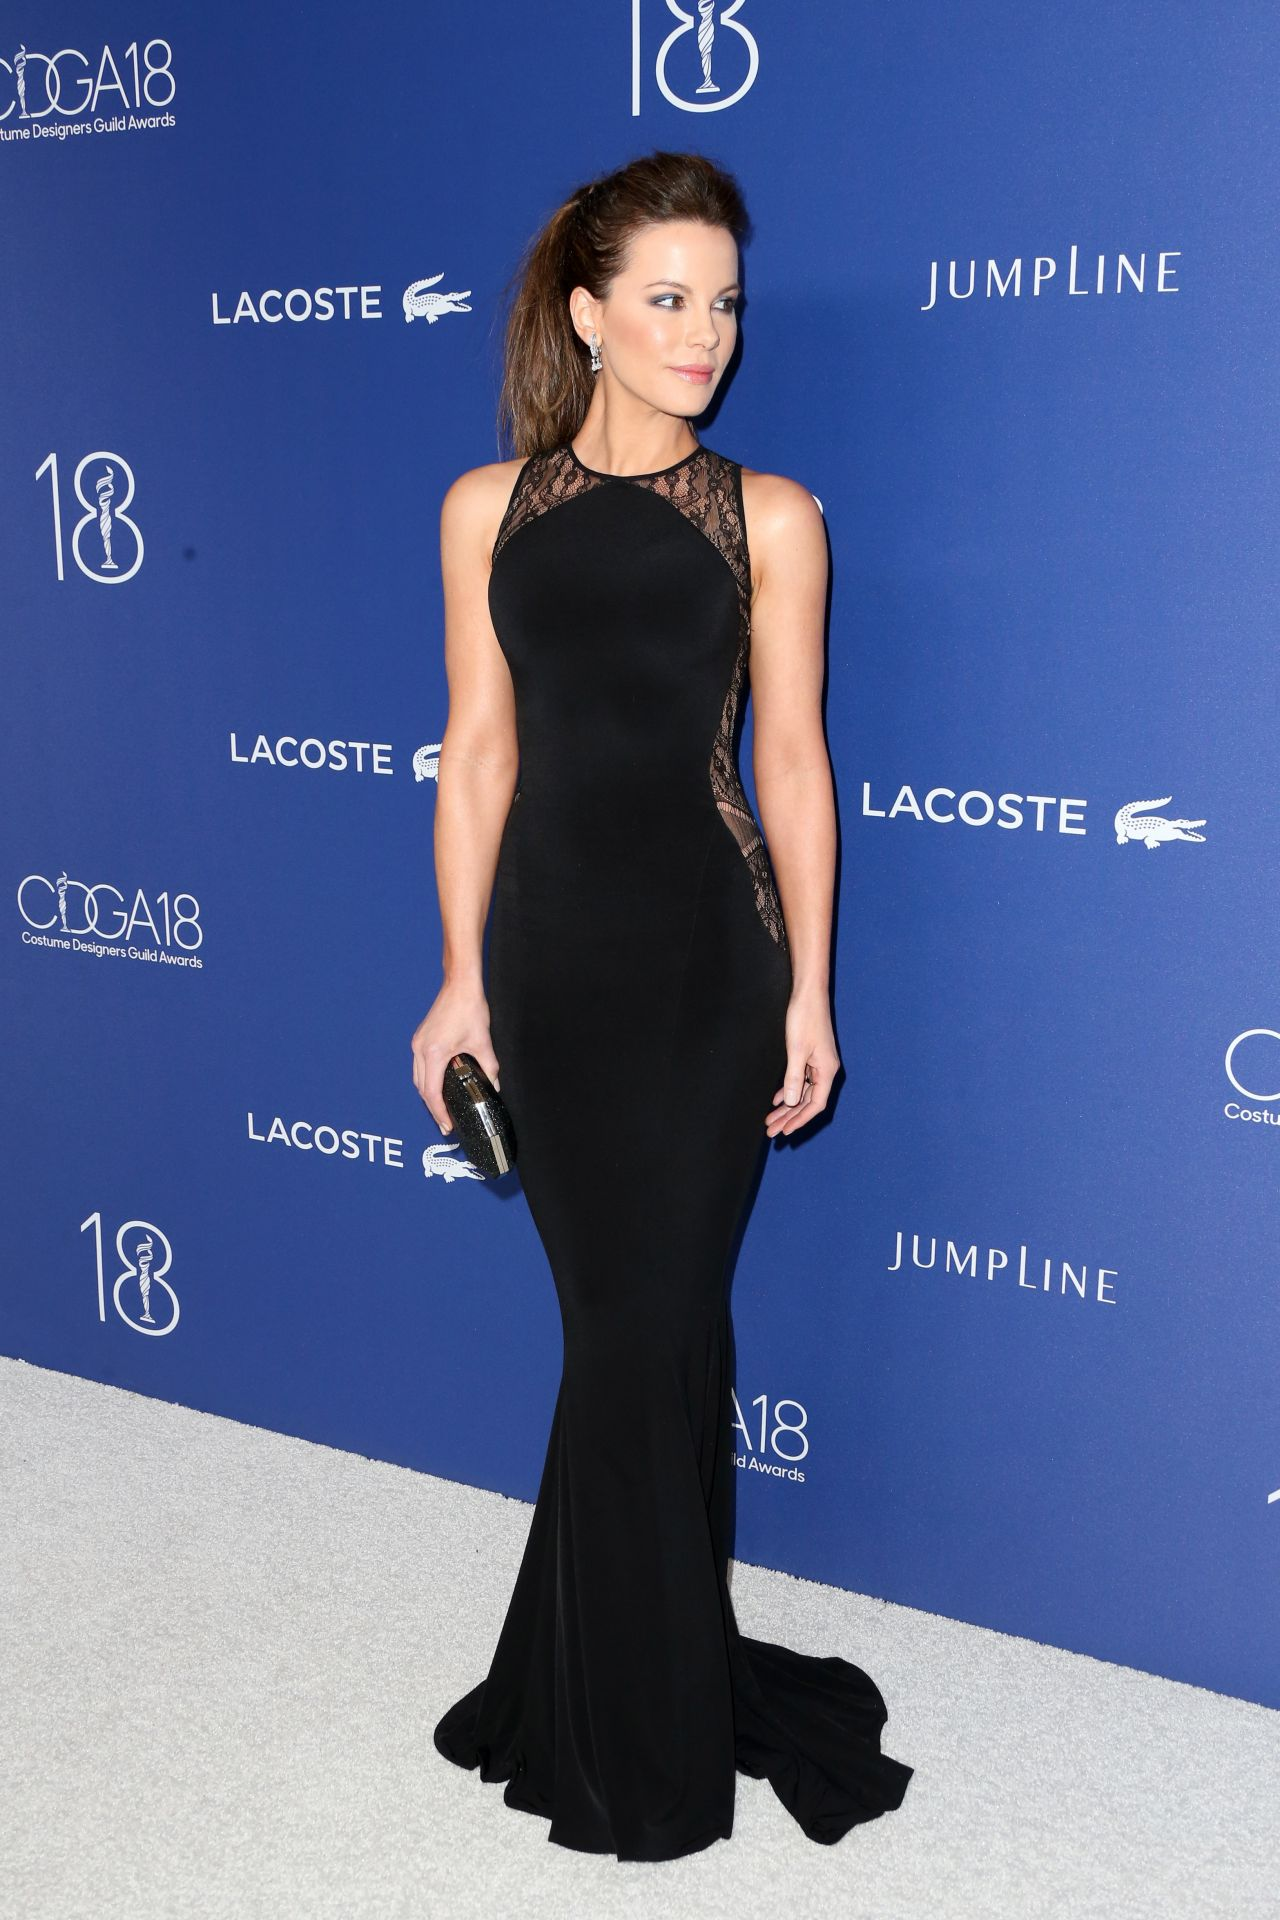 kate-beckinsale-costume-designers-guild-awards-2016-with-lacoste-in-beverly-hills-5